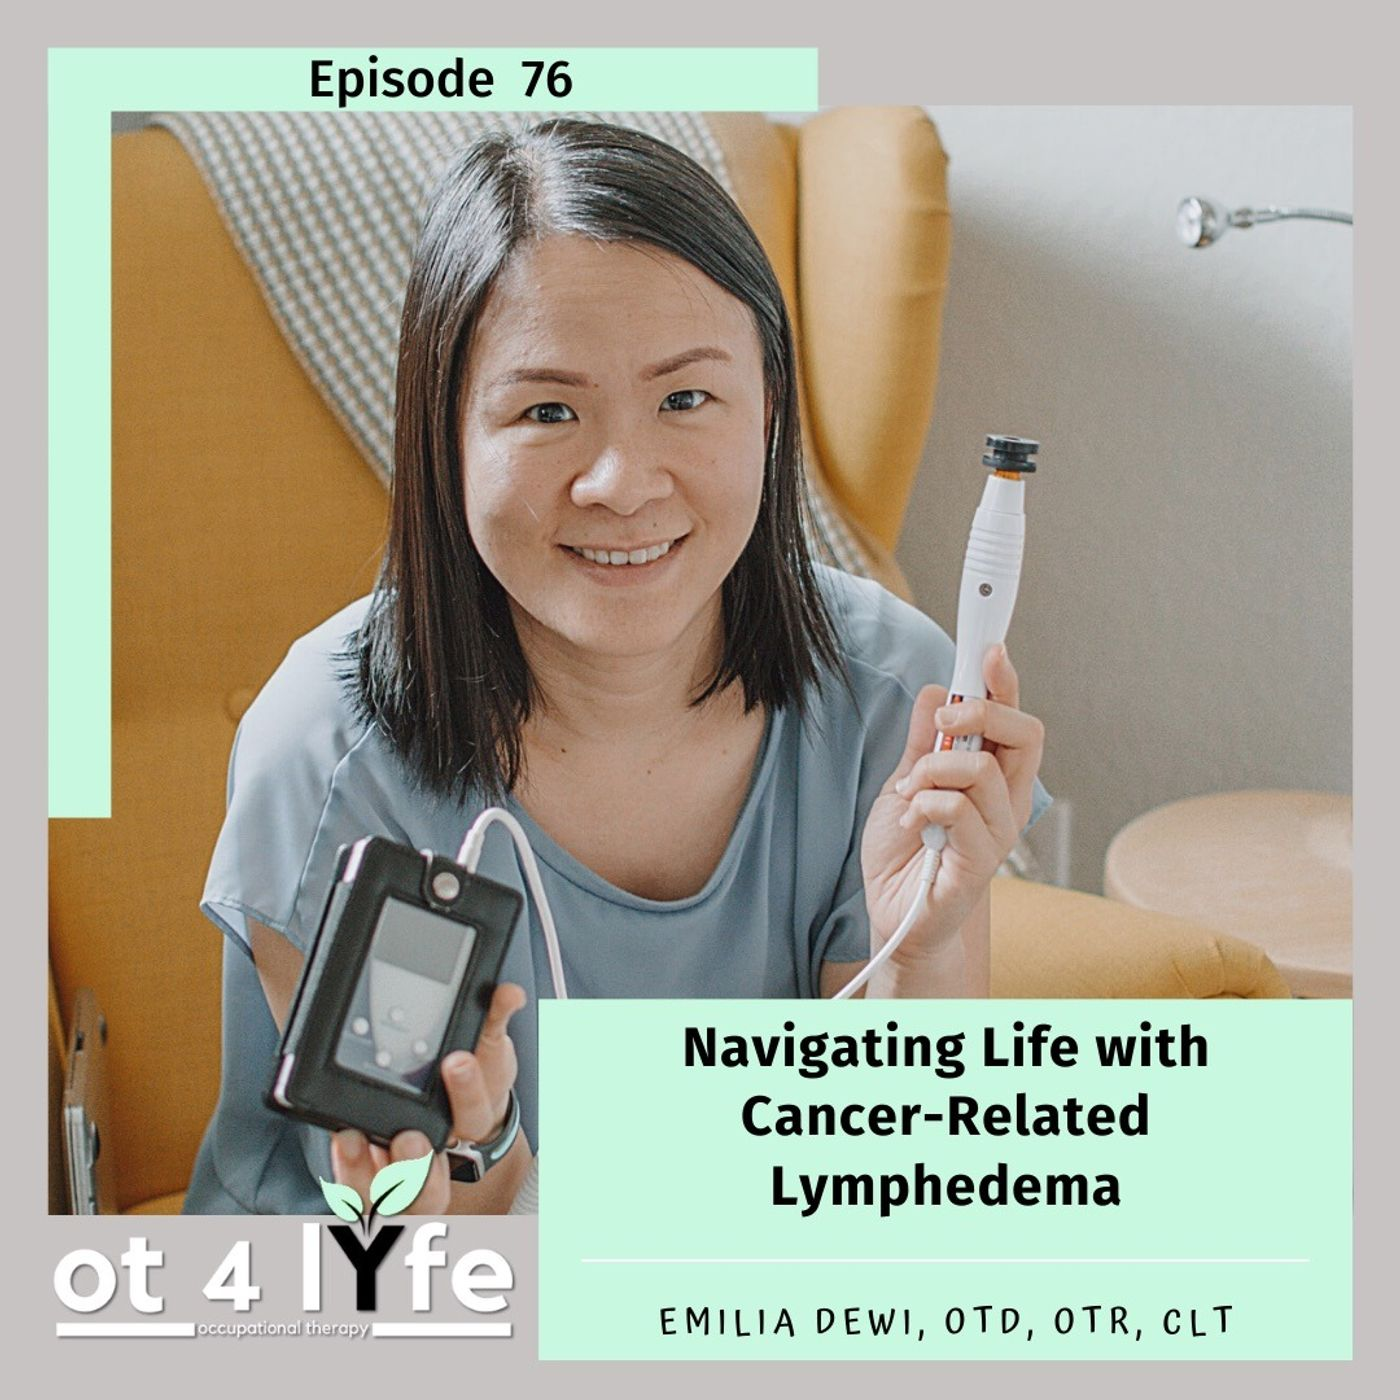 Navigating Life with Cancer-Related Lymphedema with Emilia Dewi